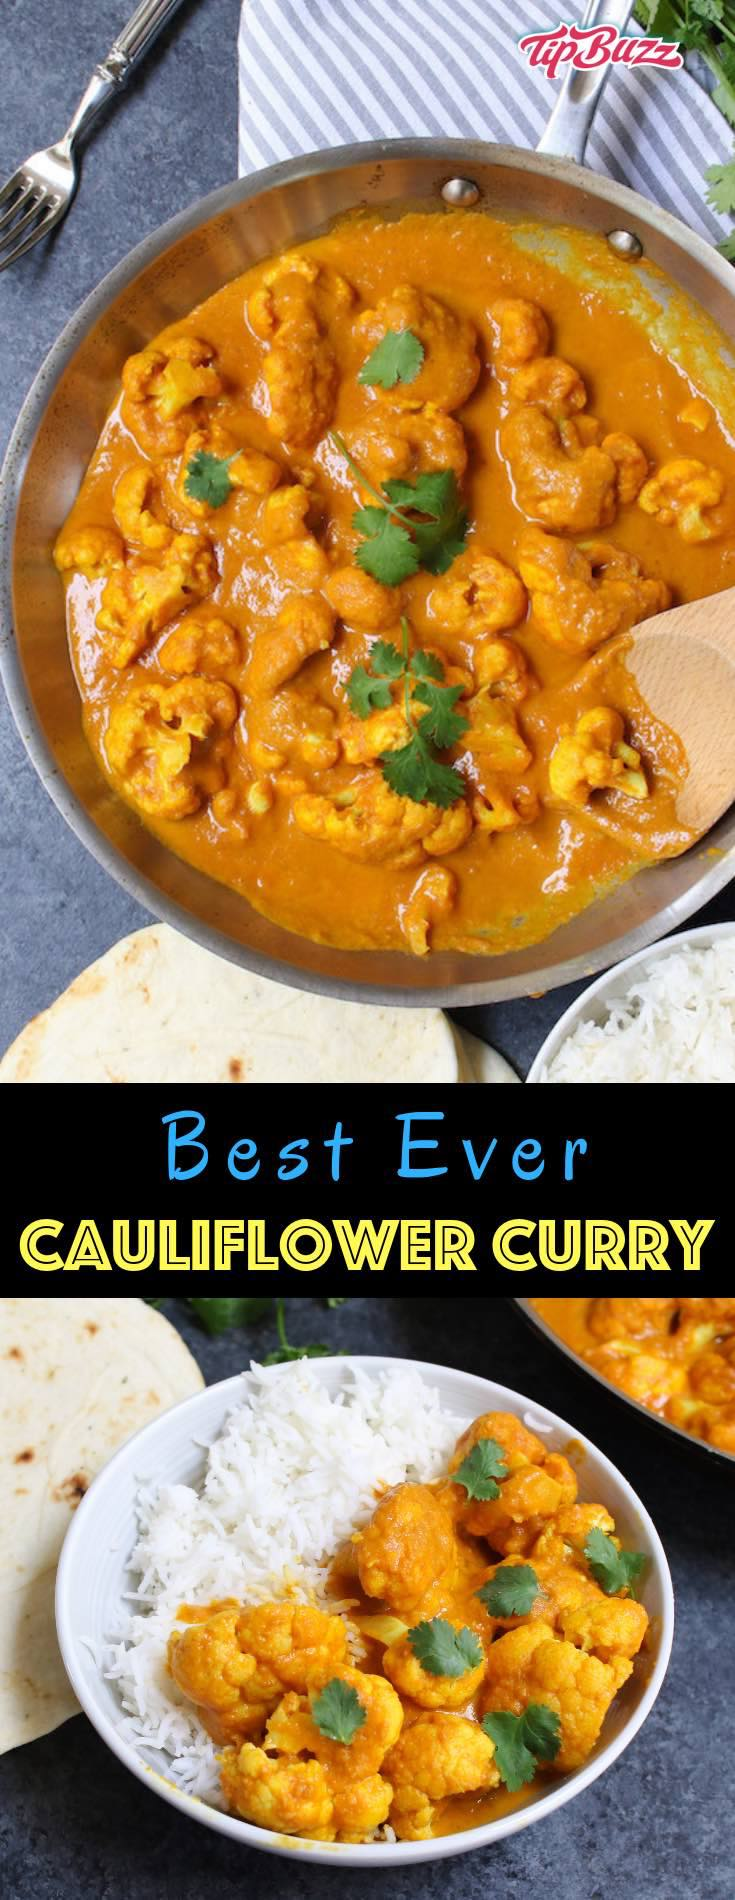 Cauliflower Curry is a rich, creamy and aromatic dish that my whole family loves! This easy coconut curry is loaded with tender cauliflower simmered with authentic spices and is cooked in one pot in under 30 minutes.